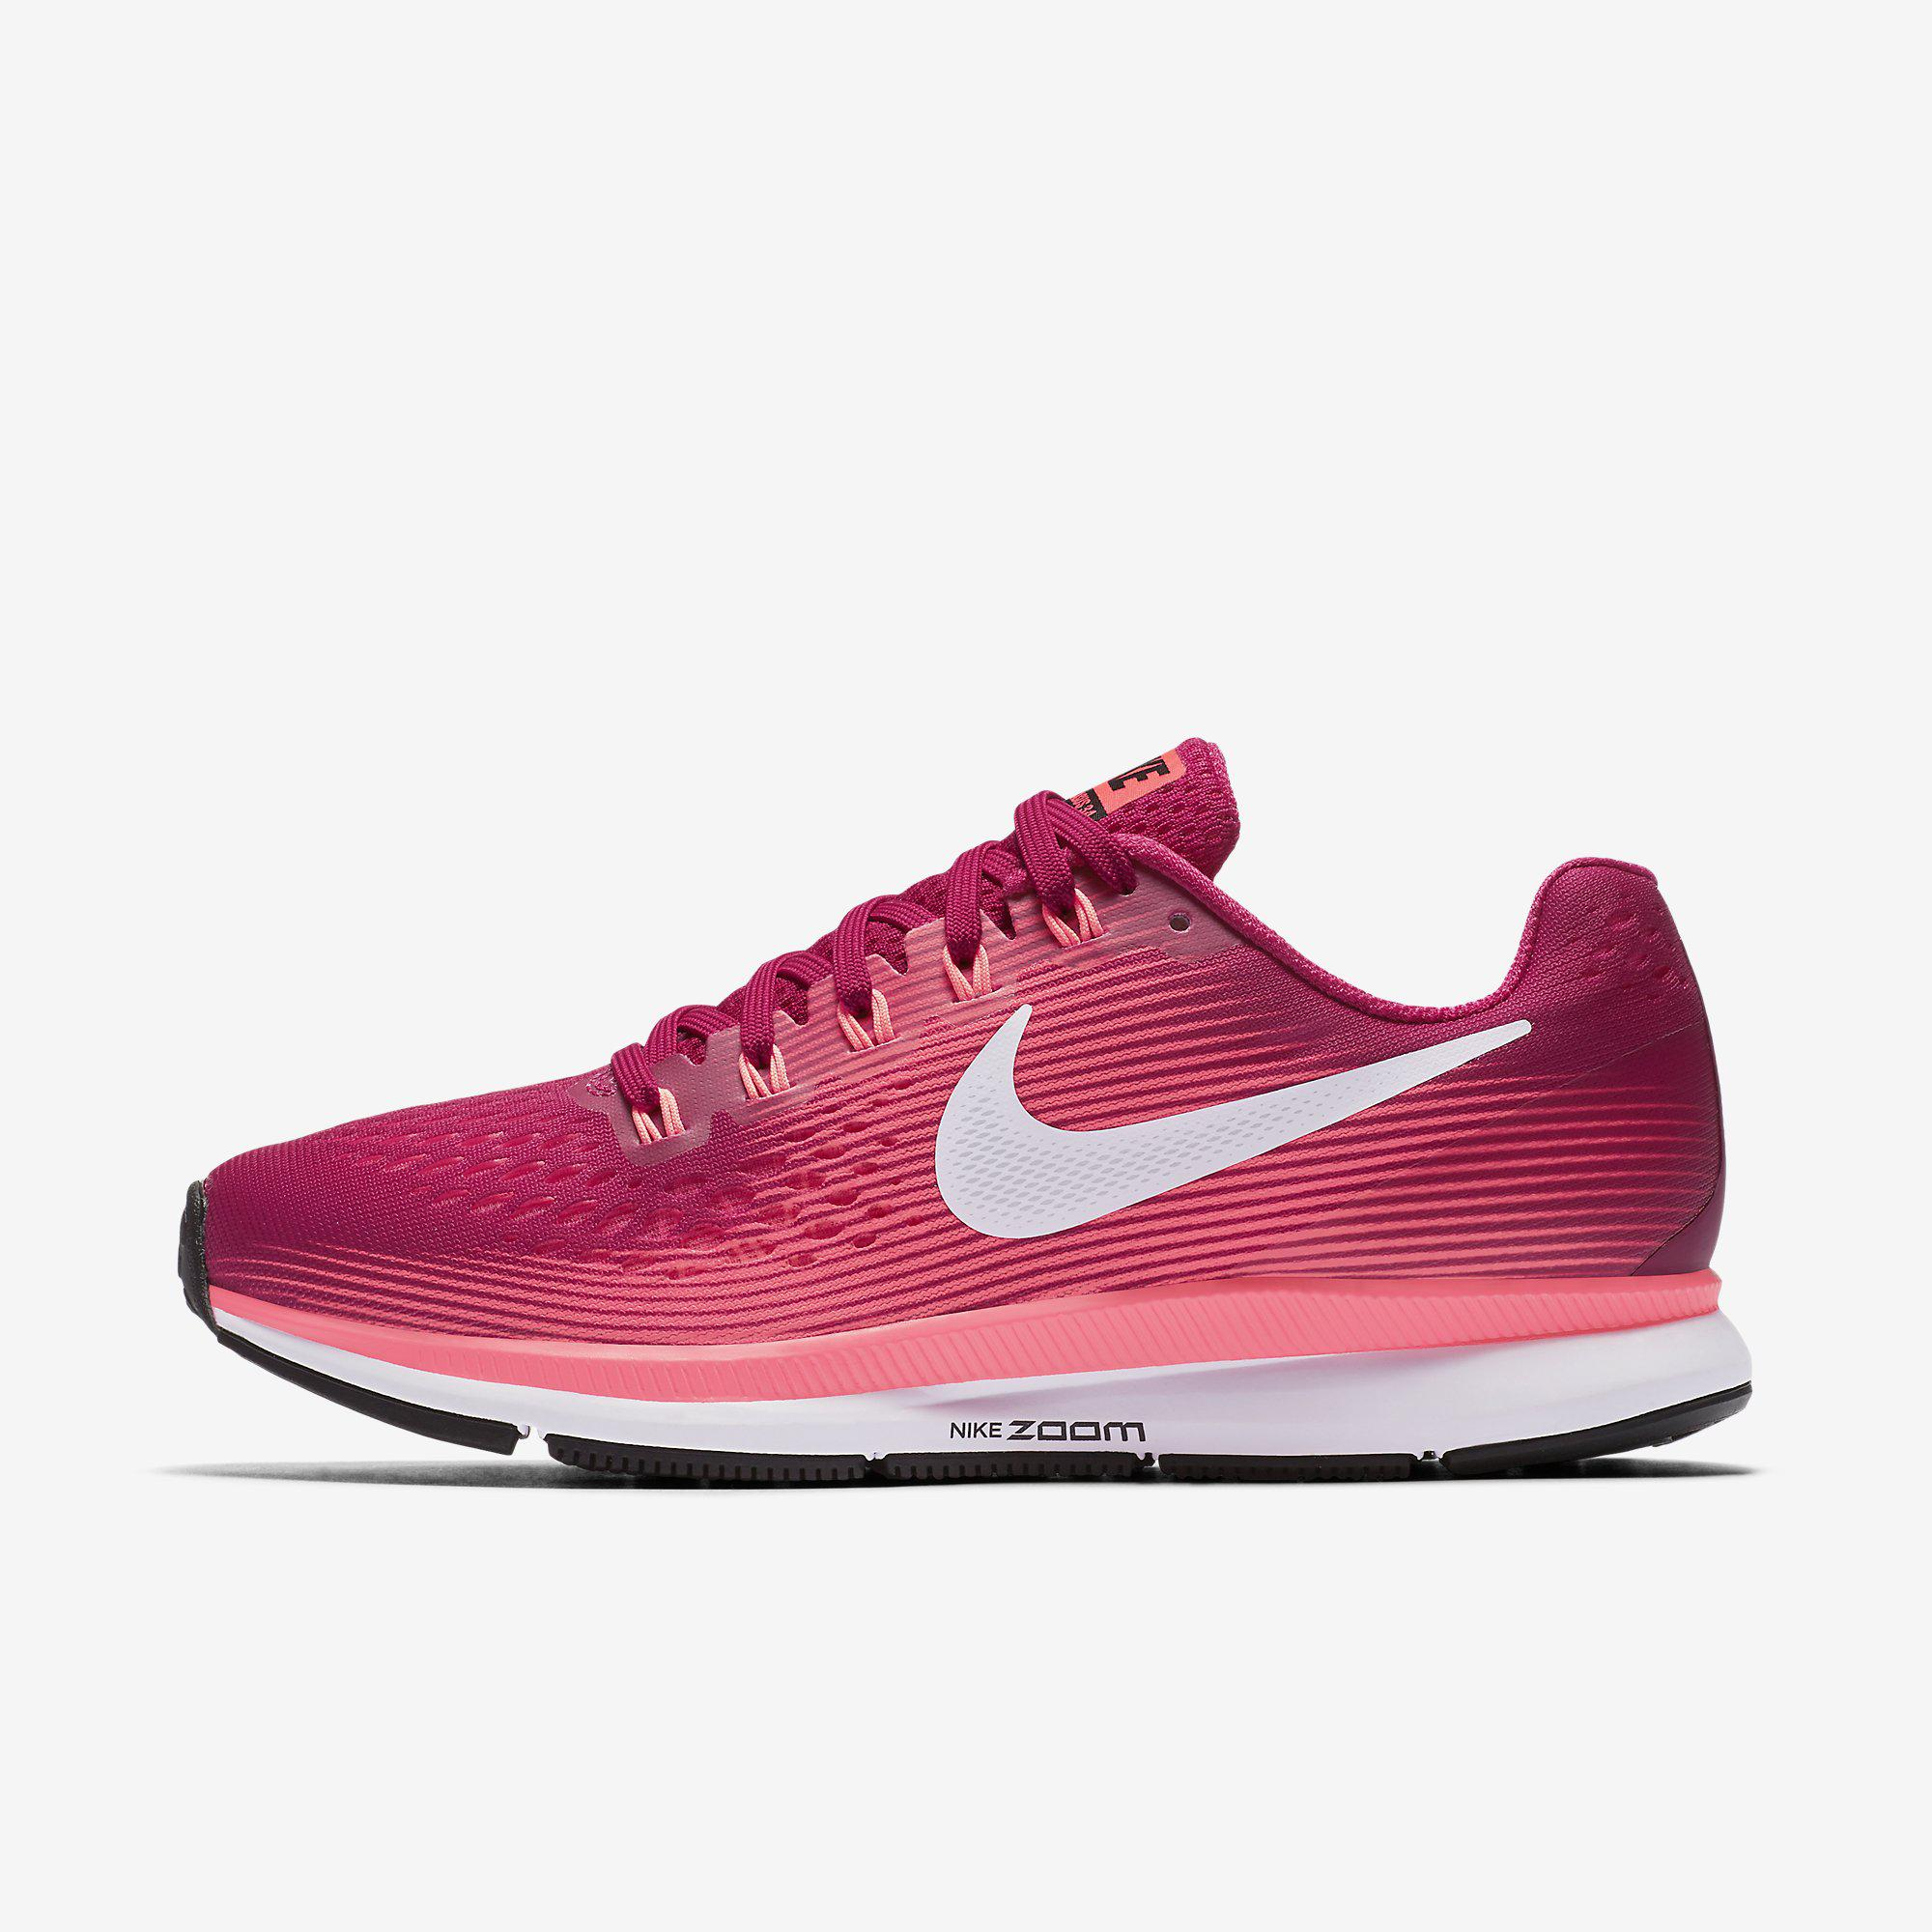 save off 68b63 cce92 Nike Womens Air Zoom Pegasus 34 Running Shoes - Sport Fuchsia -  Tennisnuts.com